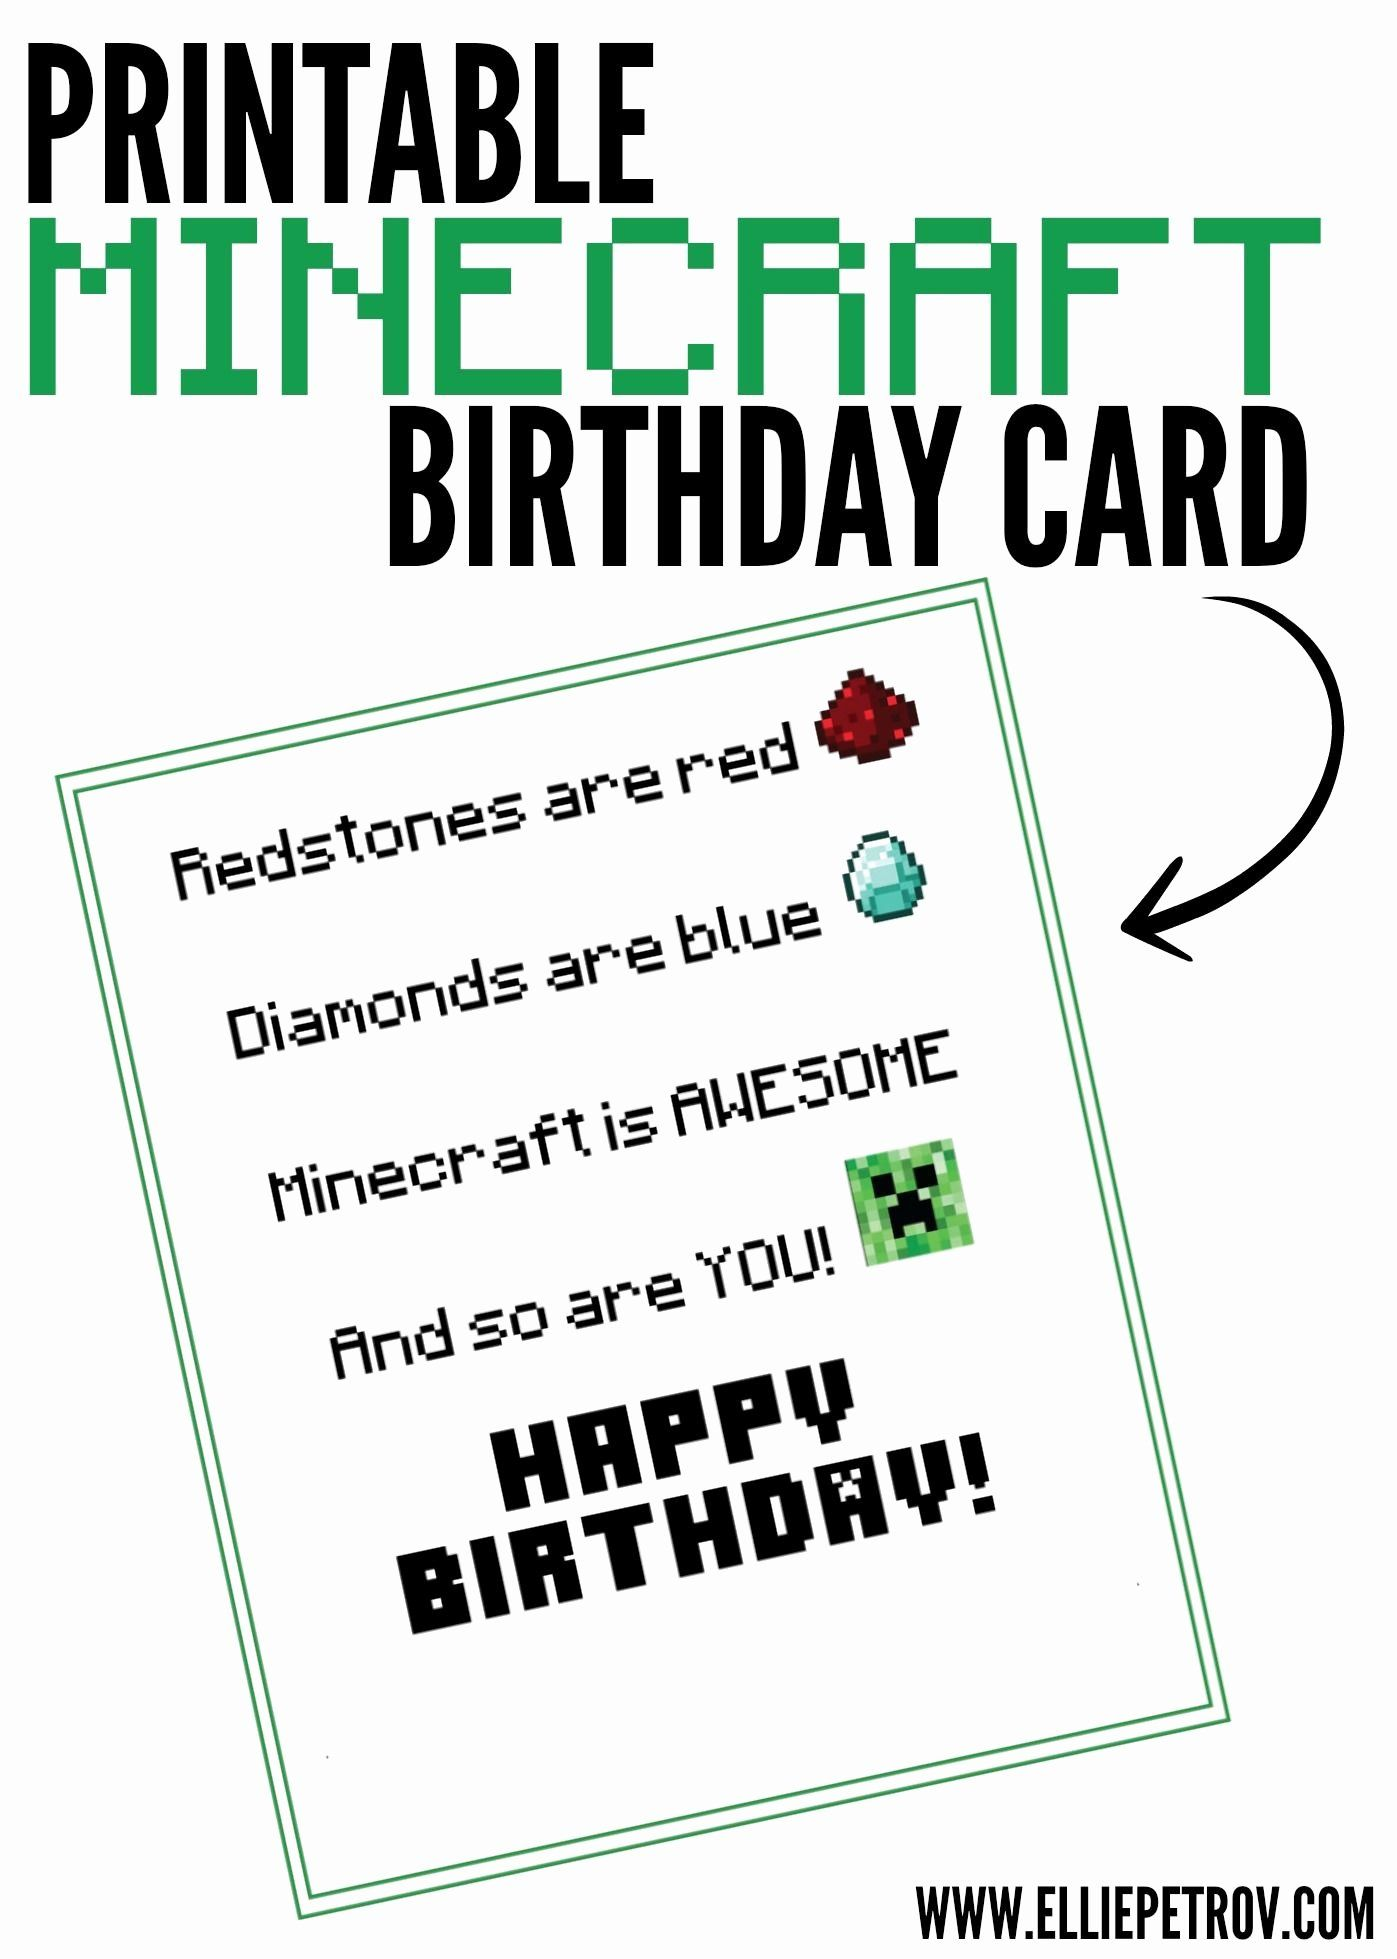 Minecraft Birthday Card Printable Unique Printable Minecraft Birthday Card Ellie Petrov Minecraft Birthday Card Birthday Card Printable Birthday Card Sayings